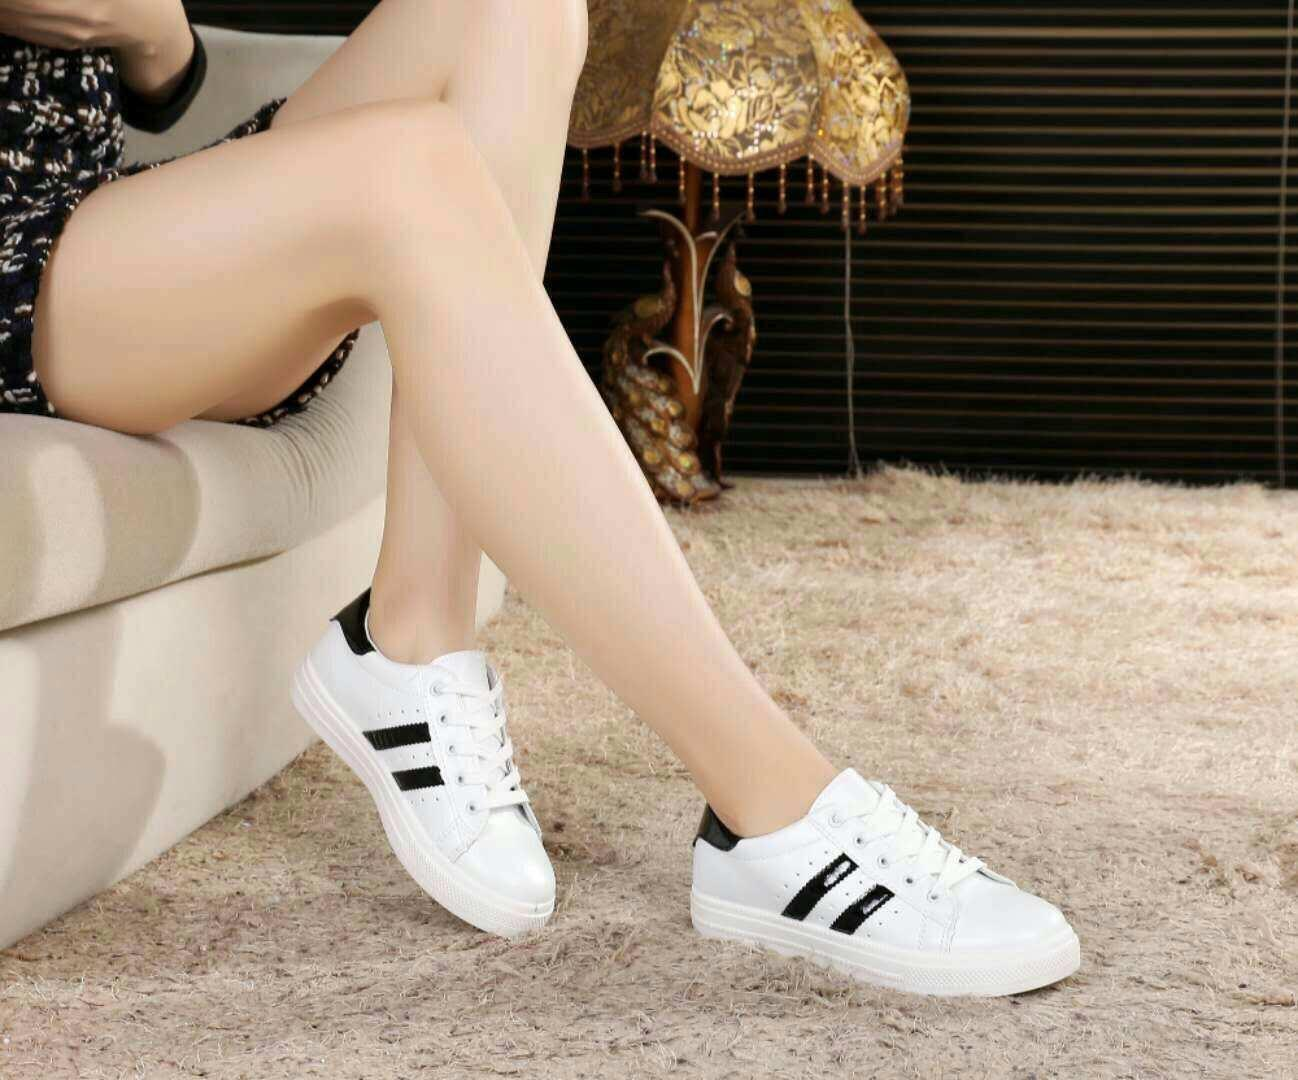 Cod Flat Shoes, Fashion Shell Shoes, Low-Top Sneakers And Nylon Tape By 5stars.ph.